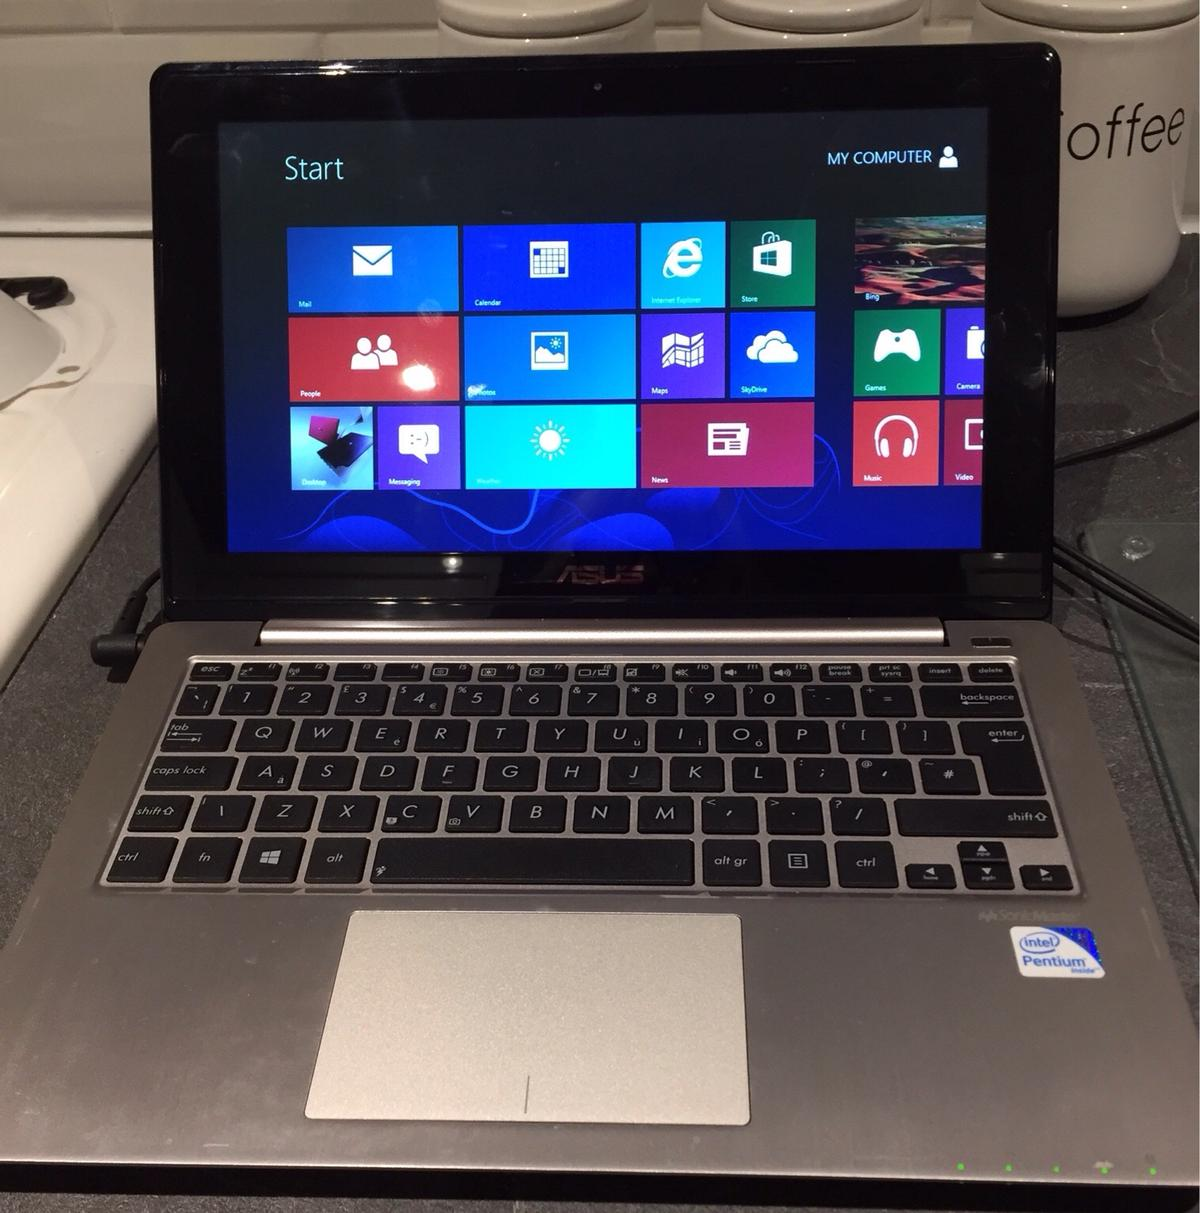 Asus Windows 8 Touch Screen Notebook Laptop In Sr4 Sunderland For 110 00 For Sale Shpock